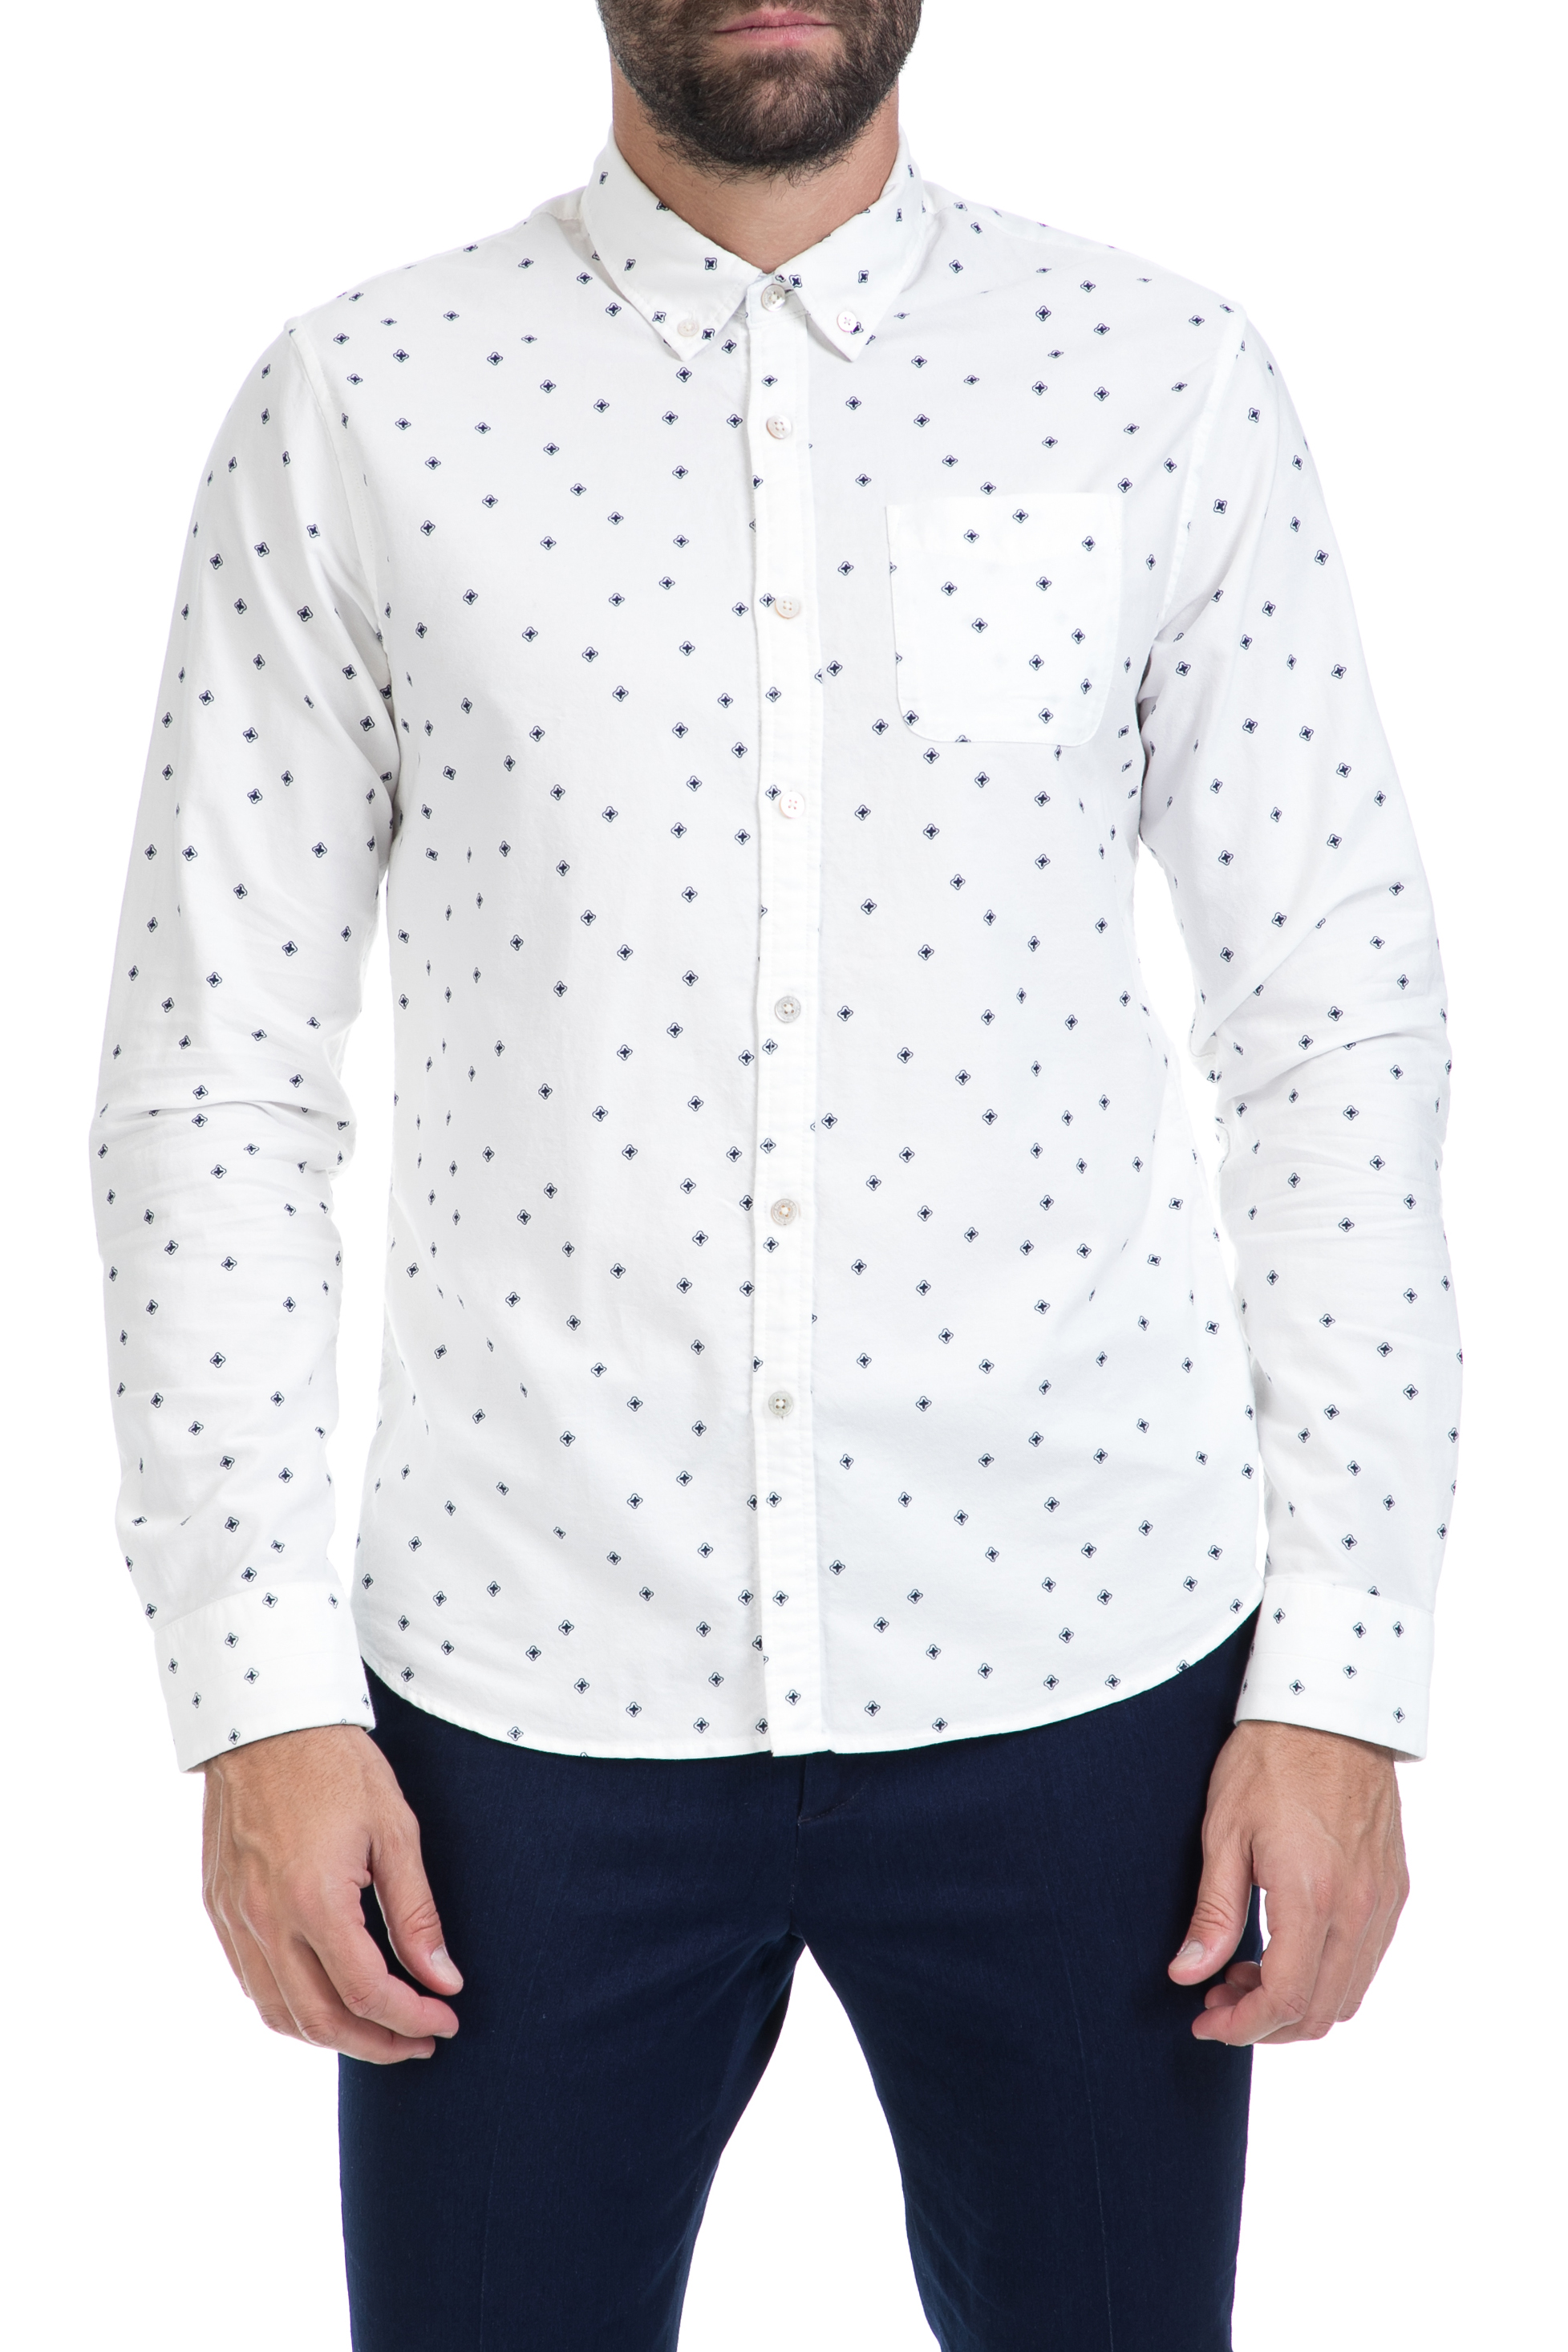 77b07bbdfae SCOTCH & SODA – Ανδρικό πουκάμισο Ams Blauw slim fit allover pri λευκό  1547136.0-0004